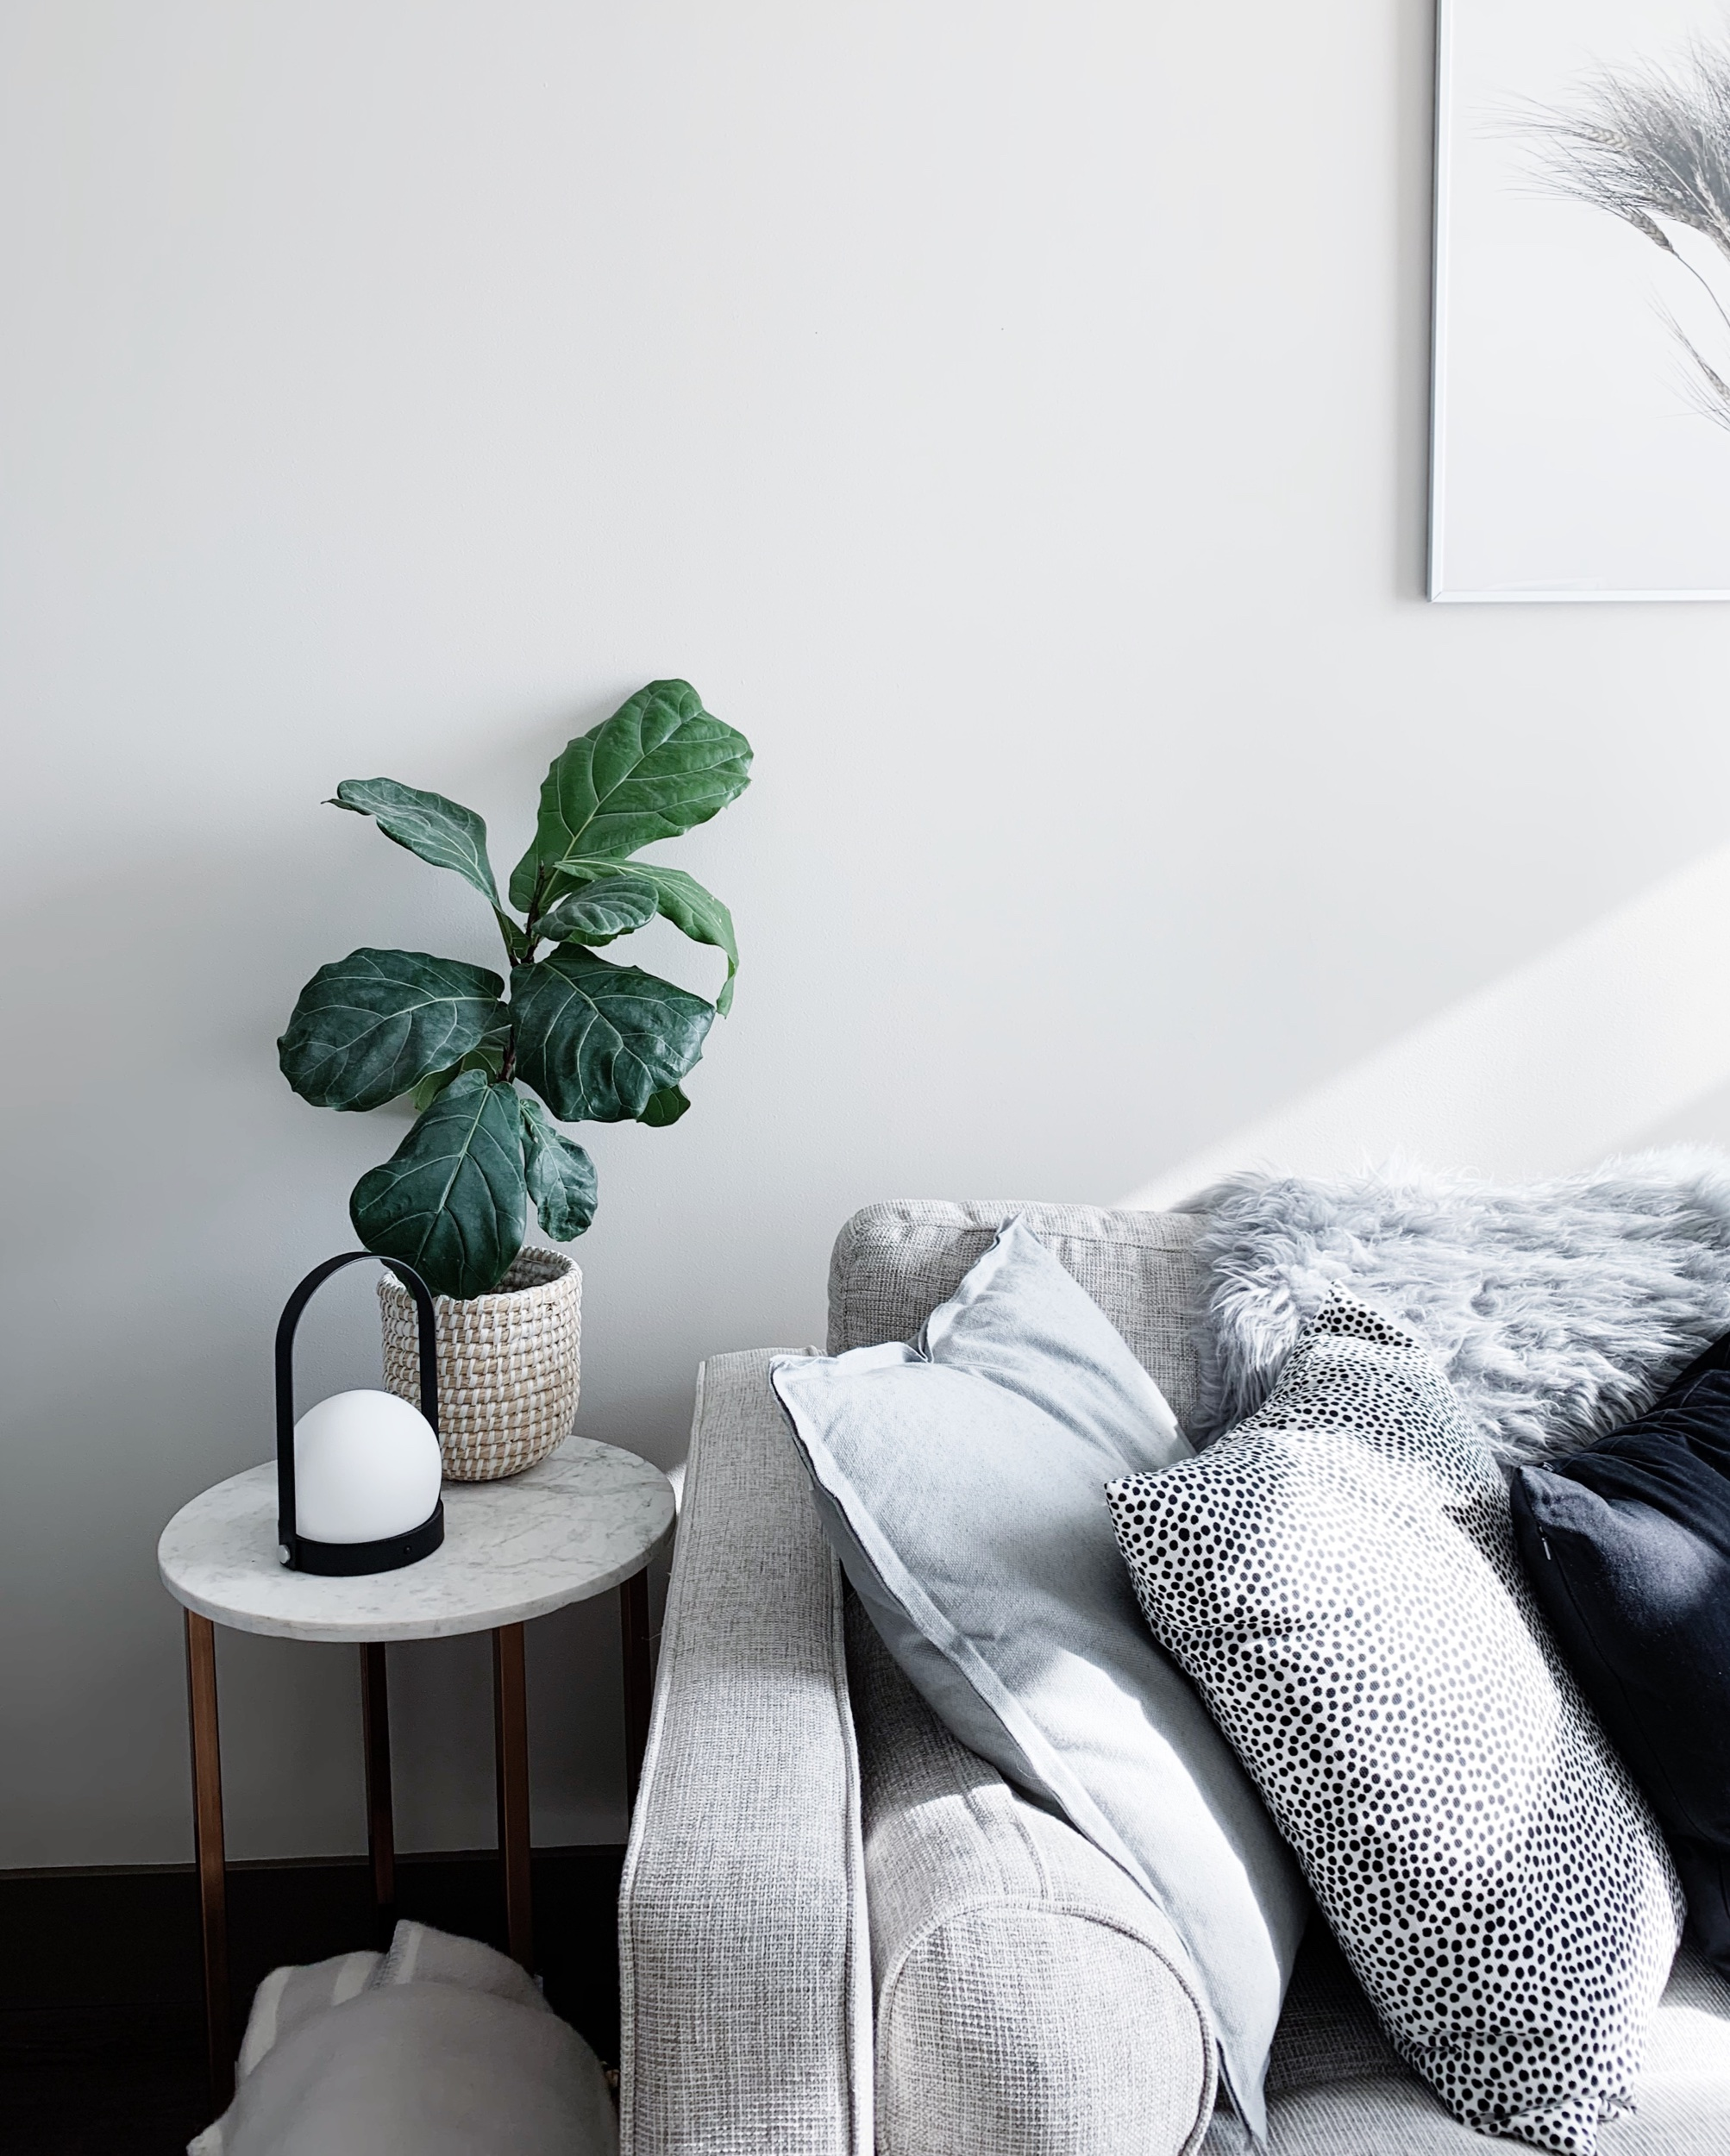 Lamp  |  Pillows  |  Planter  |  Sofa  |  Features gifted products